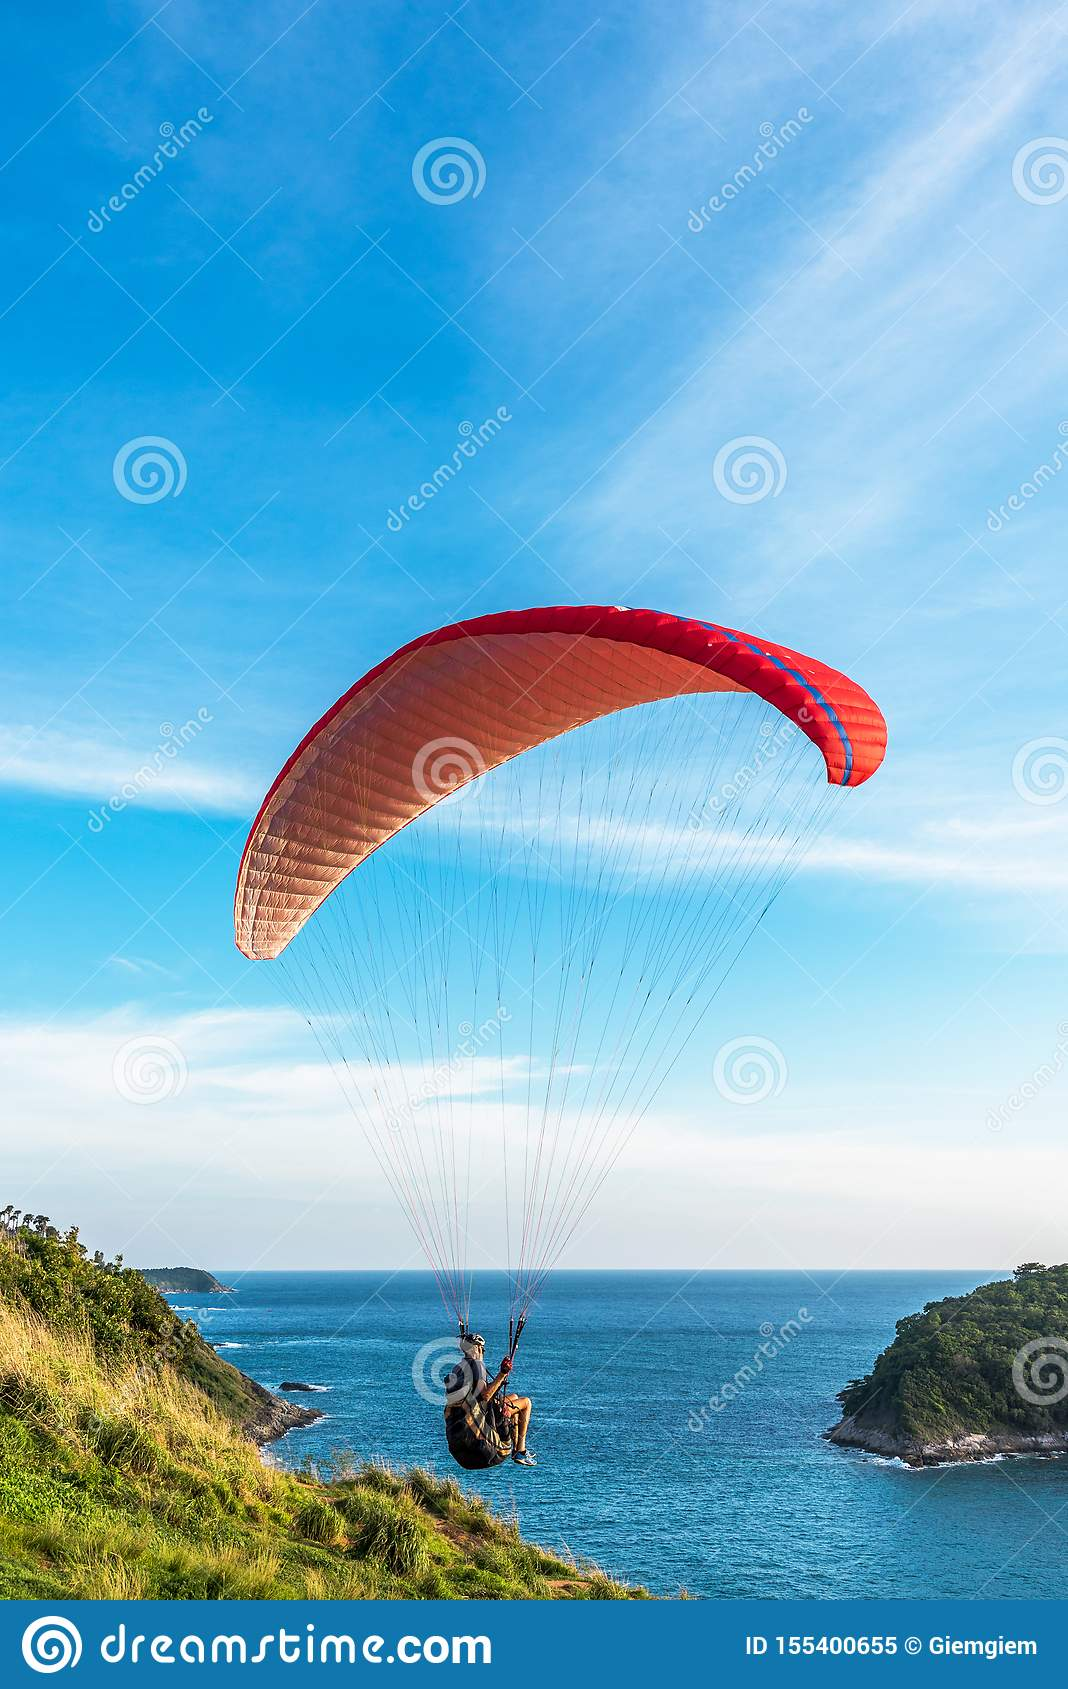 Paragliding Extreme sport, Paraglider flying on the blue sky and white cloud in Summer day at Phuket Sea, Thailand